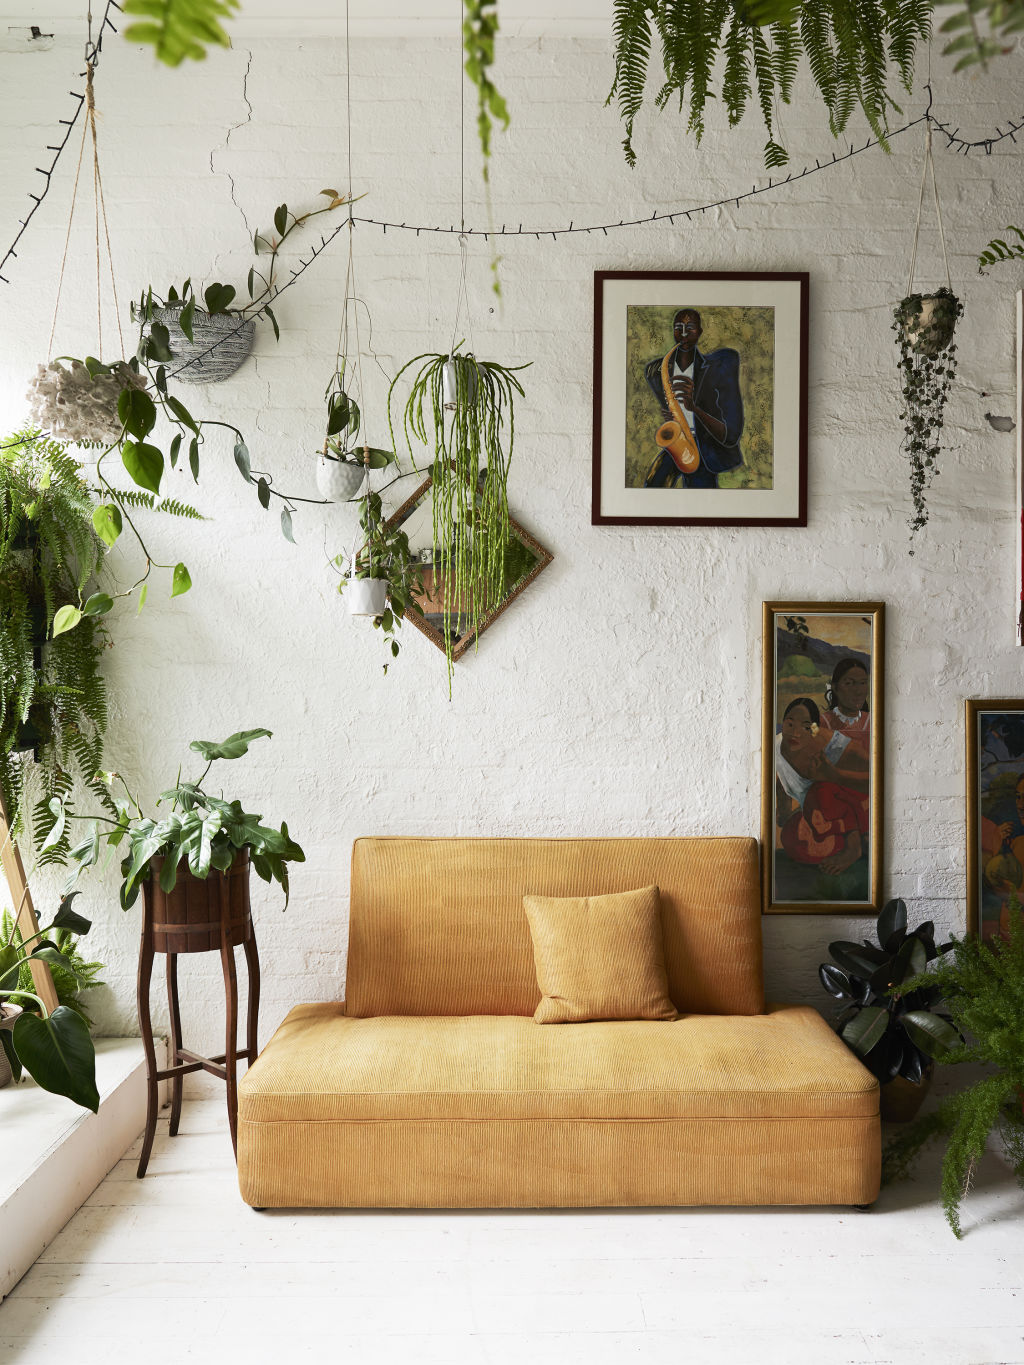 'My most creative work is done in this room. I have created my version of a dream space that encourages and inspires creativity within myself. A lot of my girlfriends who work for themselves will come work with me in the space, we'll play Aretha Franklin, drink wine and throw ideas around the space, it has a good vibe', Jenna tells. Couch + paintings are all secondhand. Styling: Annie Portelli.